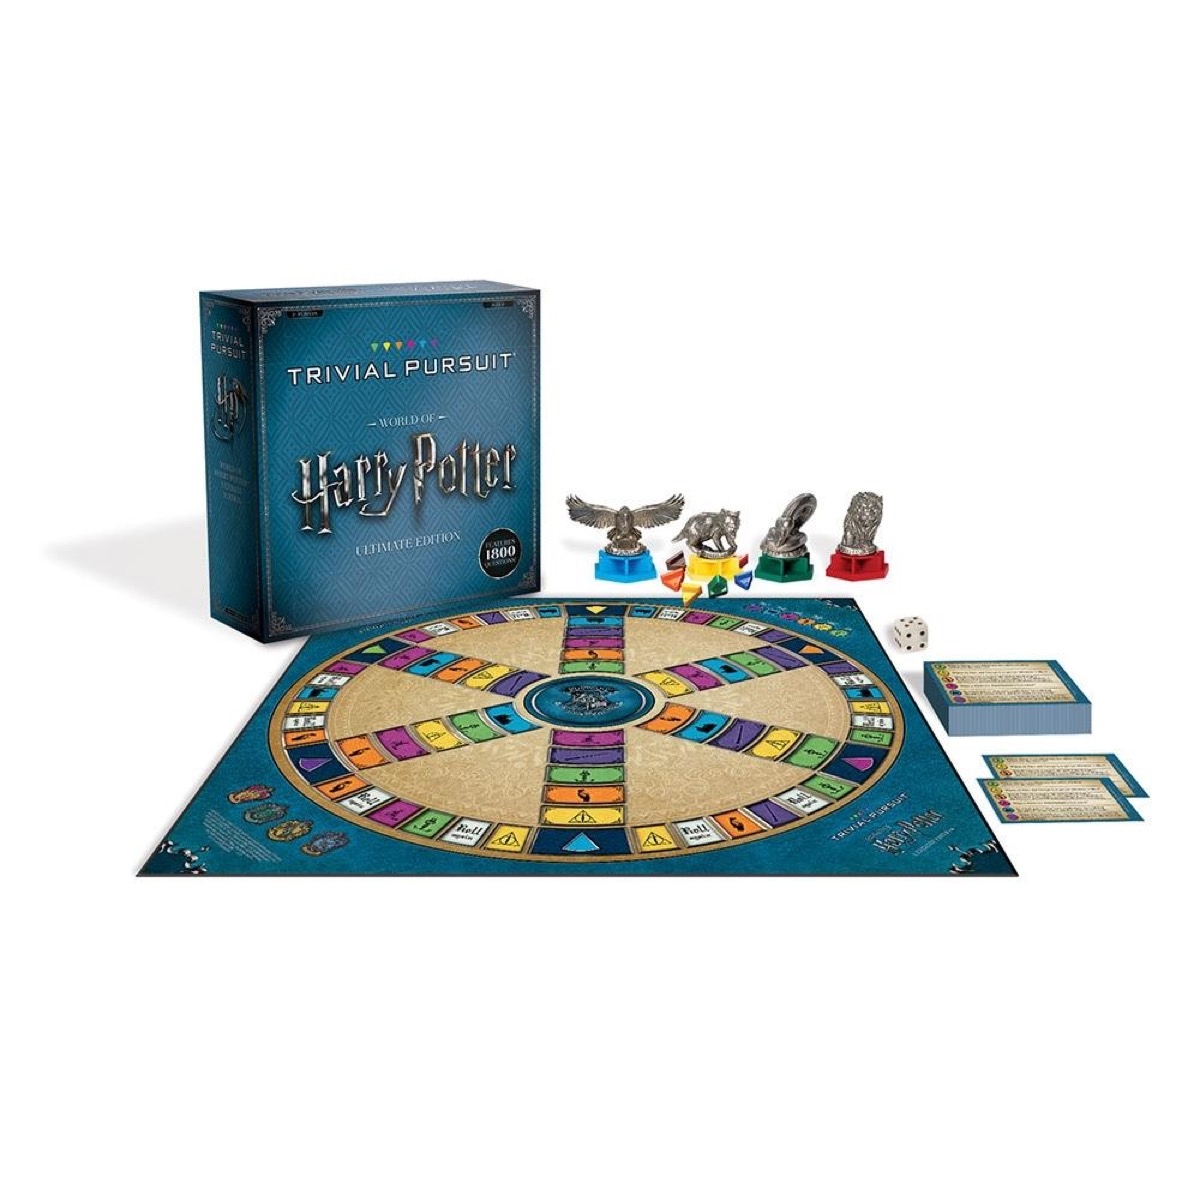 Harry Potter Trivial Pursuit {Gifts For Harry Potter Fans}